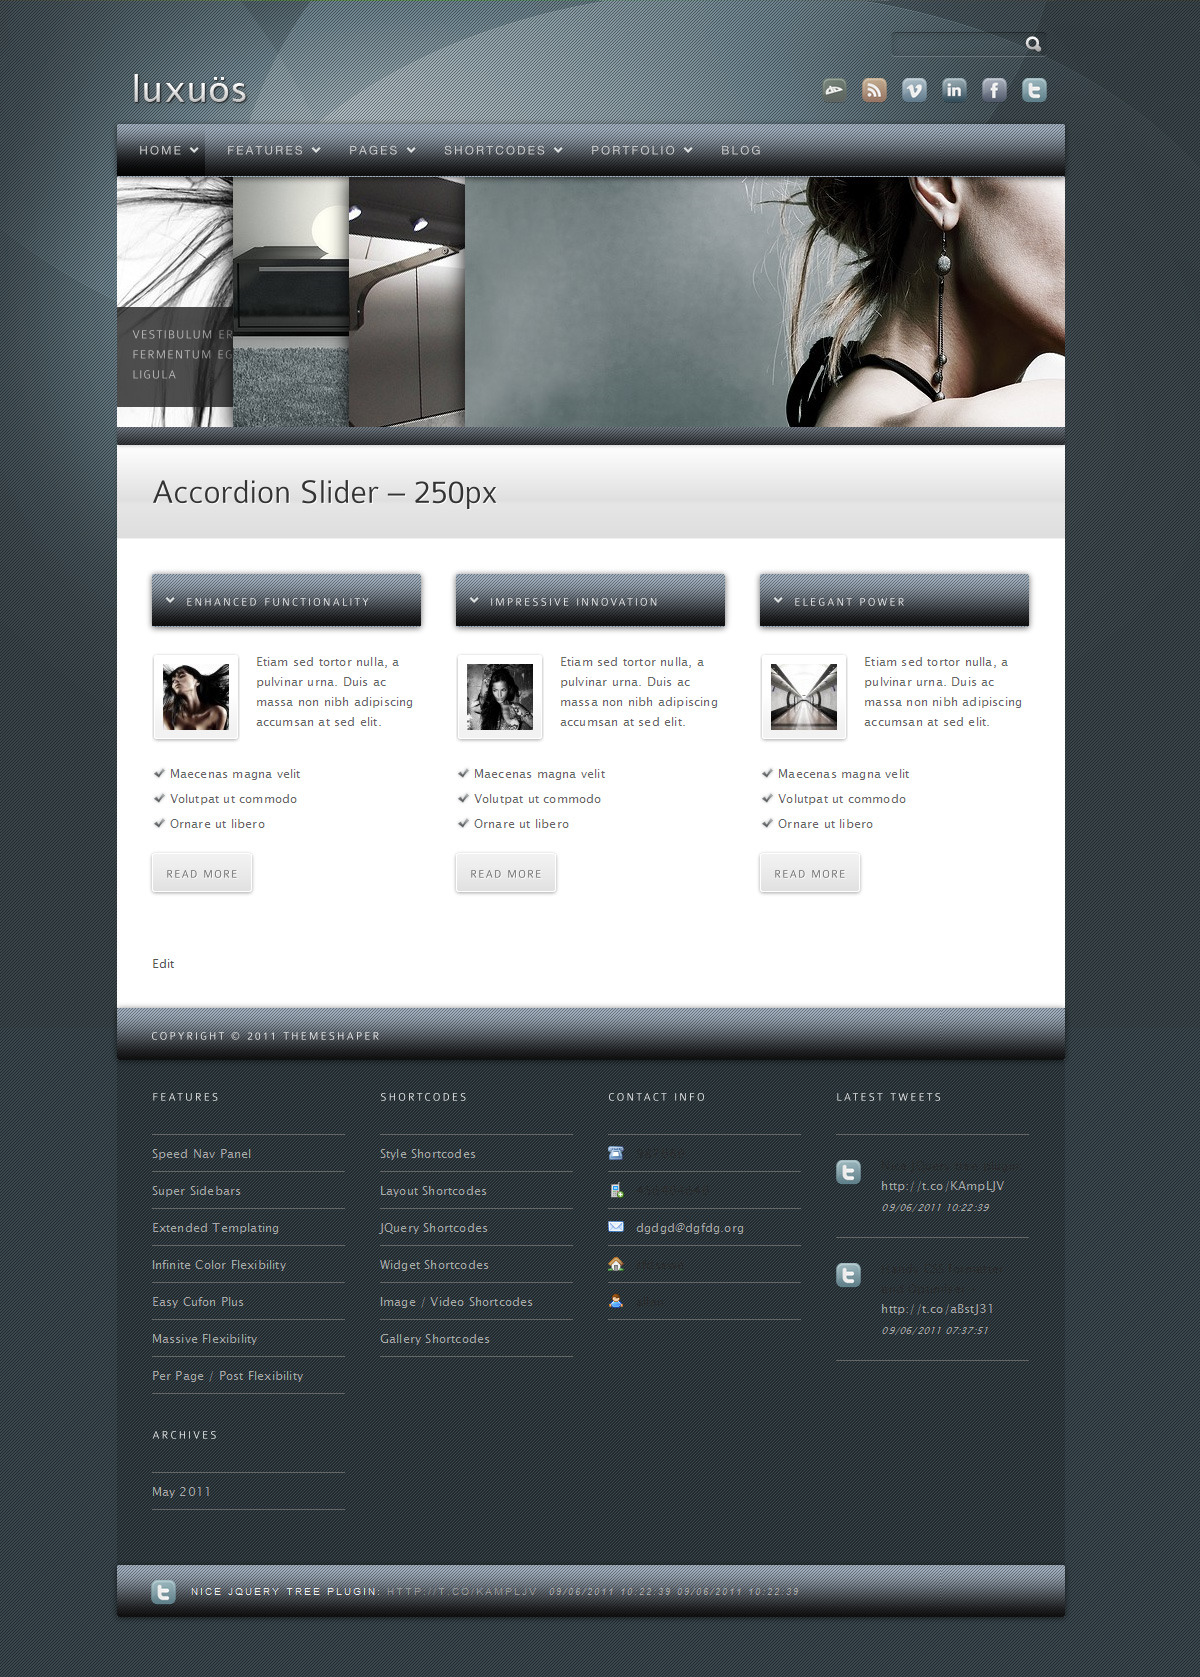 Luxuos - The homepage with slate blue background and color adjusted bars.